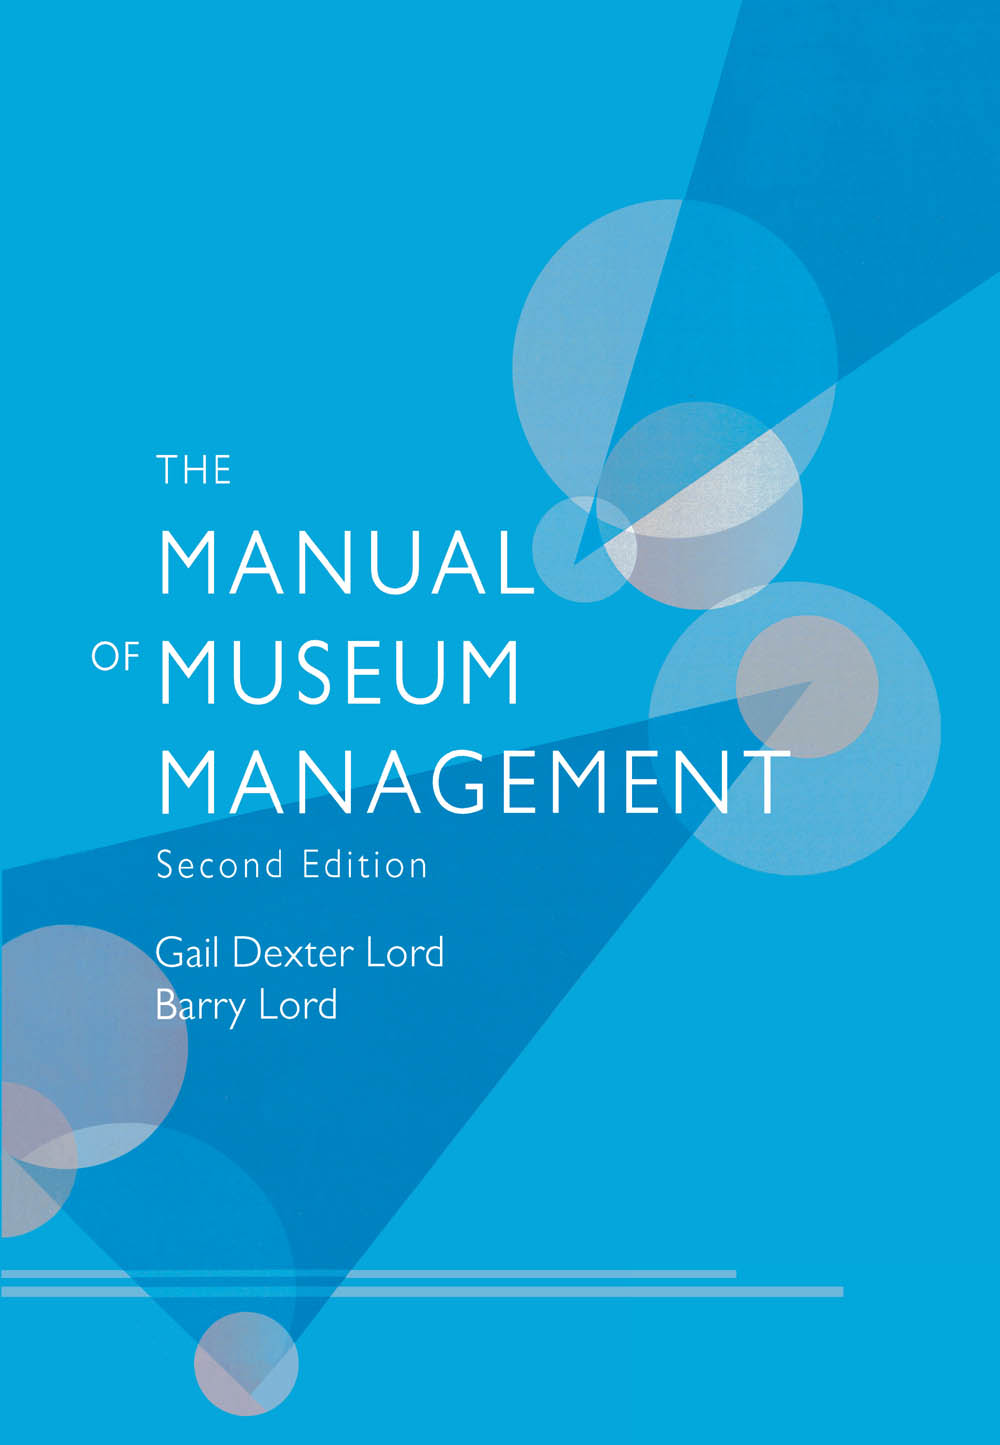 Download Ebook The Manual of Museum Management (2nd ed.) by Gail Dexter Lord Pdf